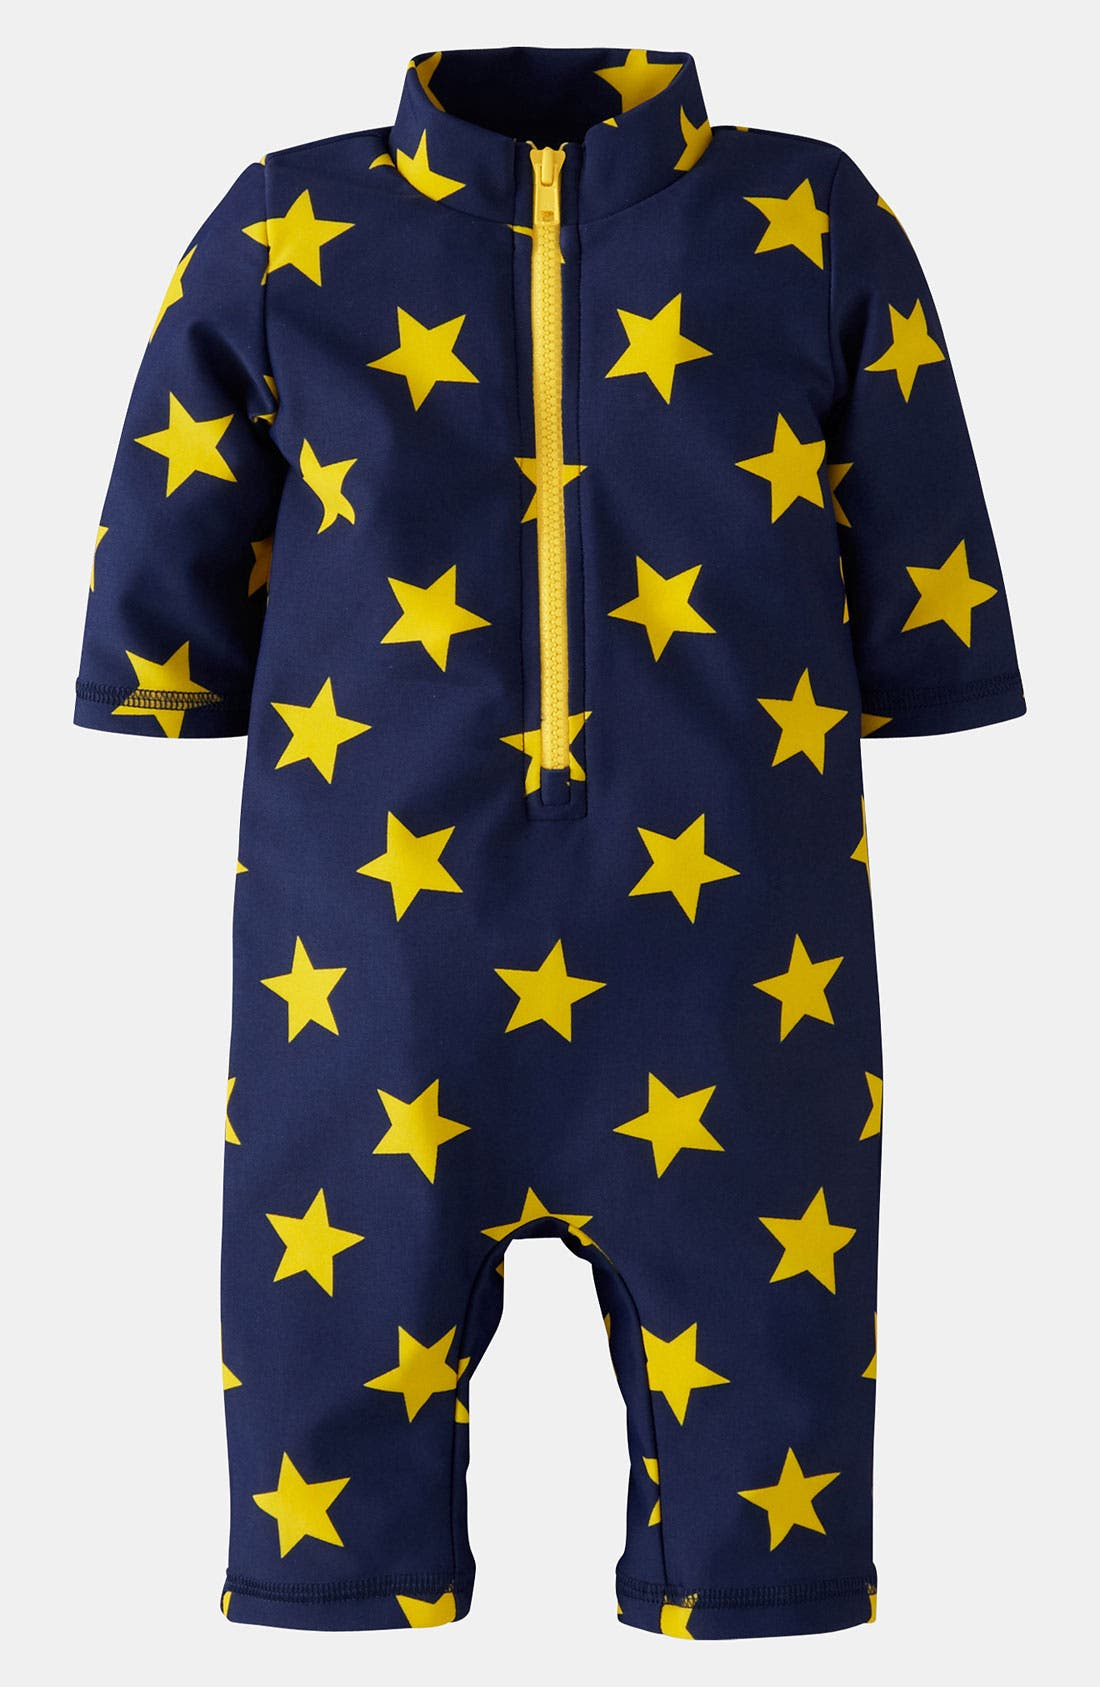 Alternate Image 1 Selected - Mini Boden Surf Suit (Baby)